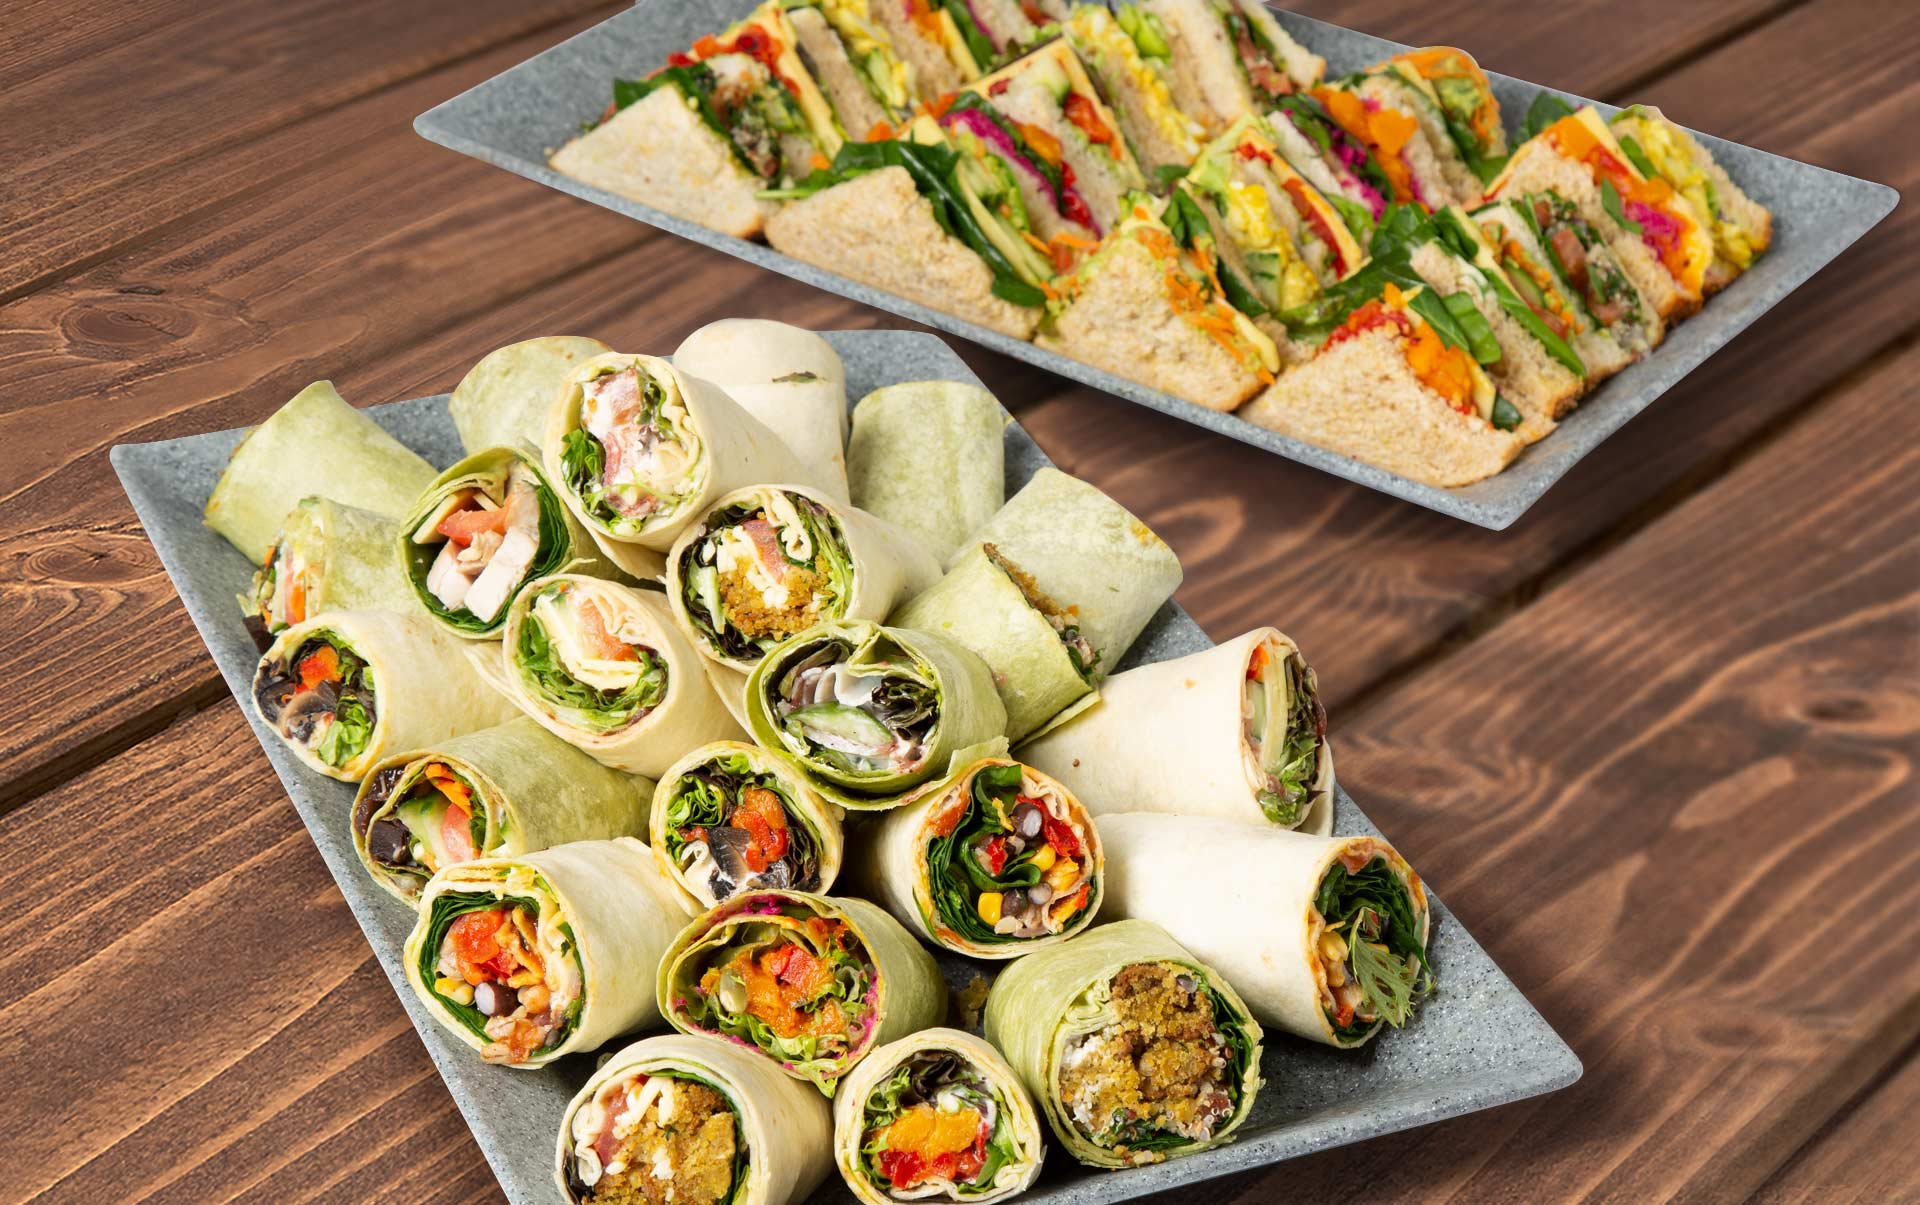 Platter of sandwiches and wraps